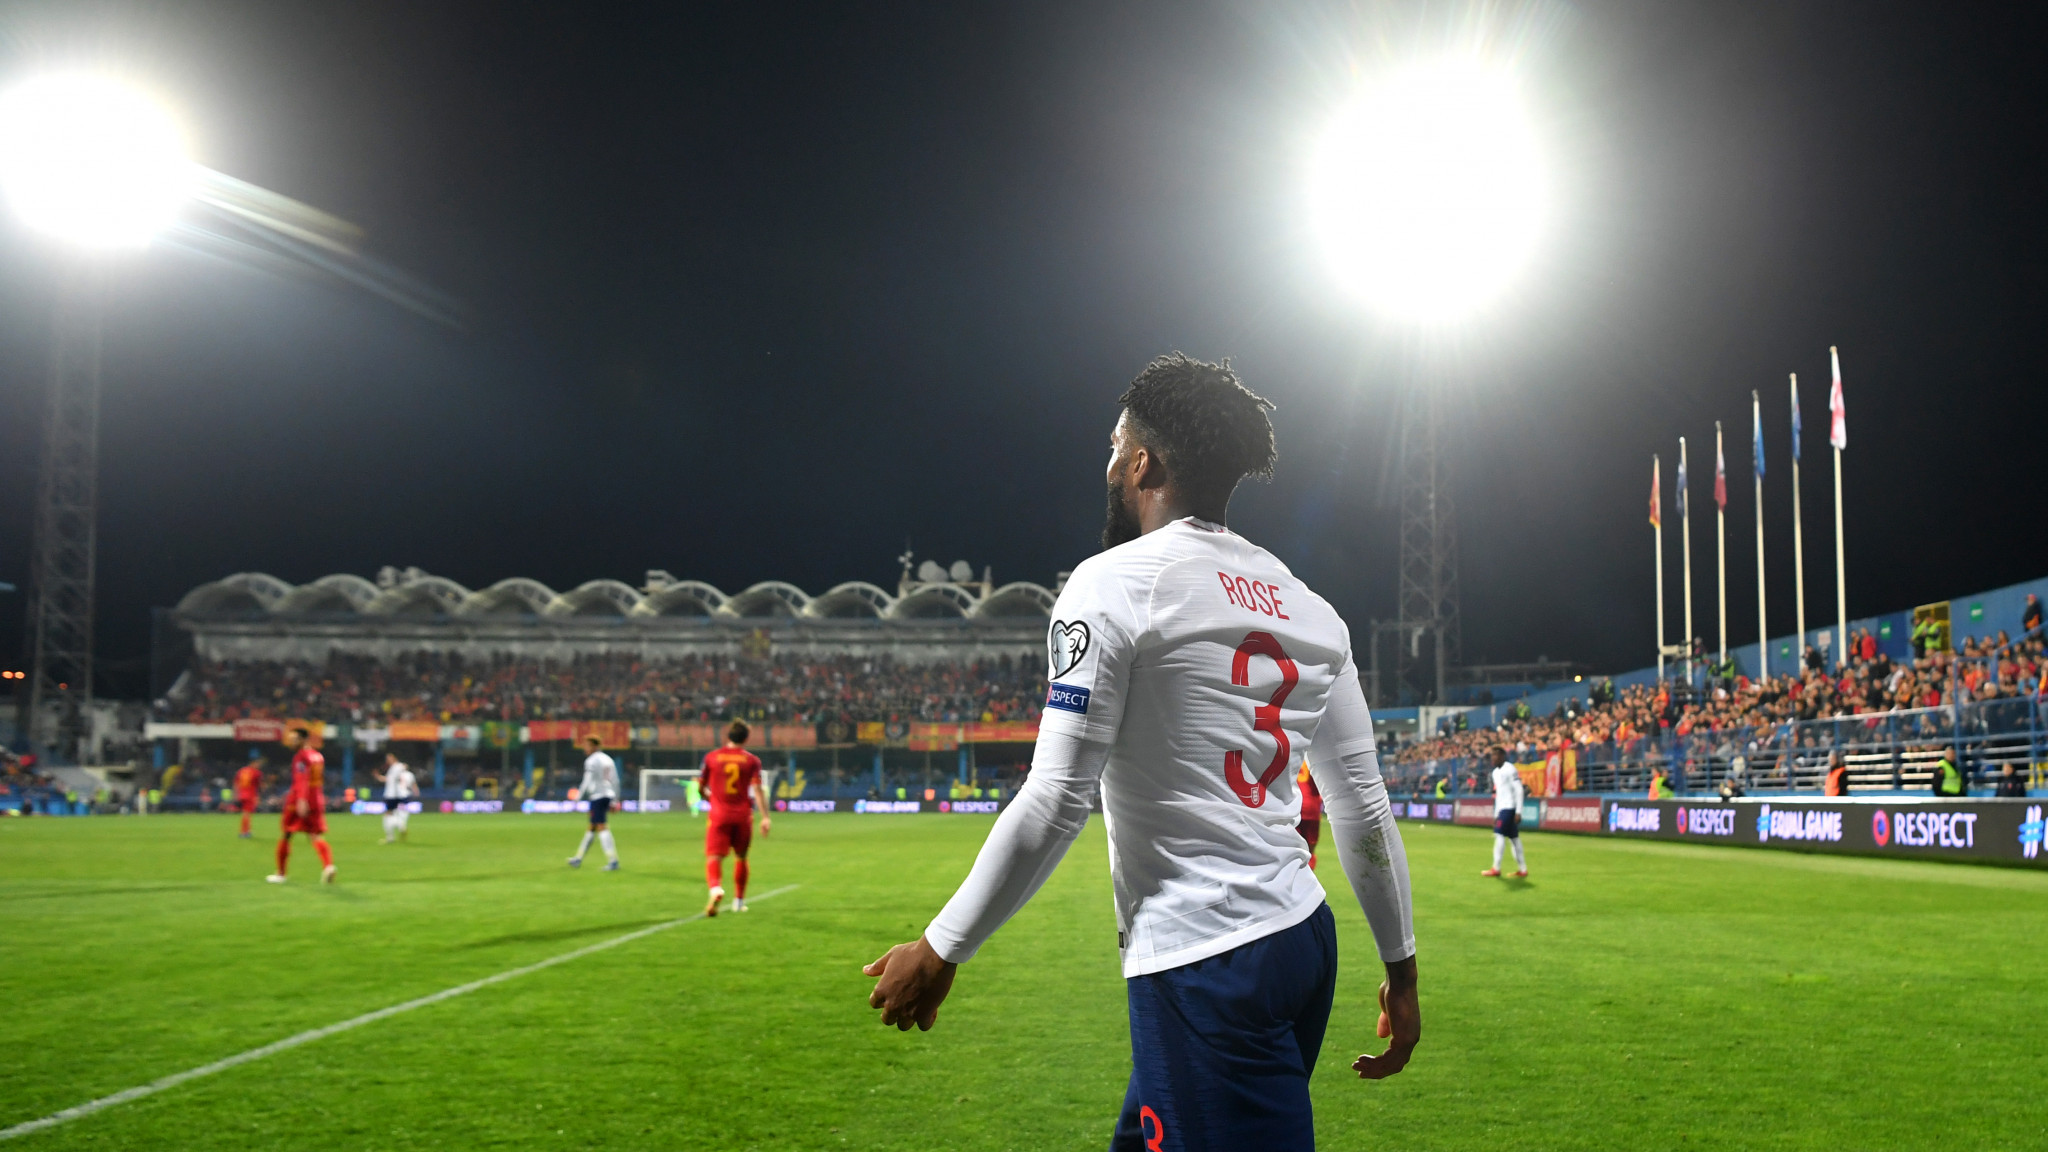 Danny Rose was one of the players who said he was targeted at Podgorica City Stadium ©Getty Images